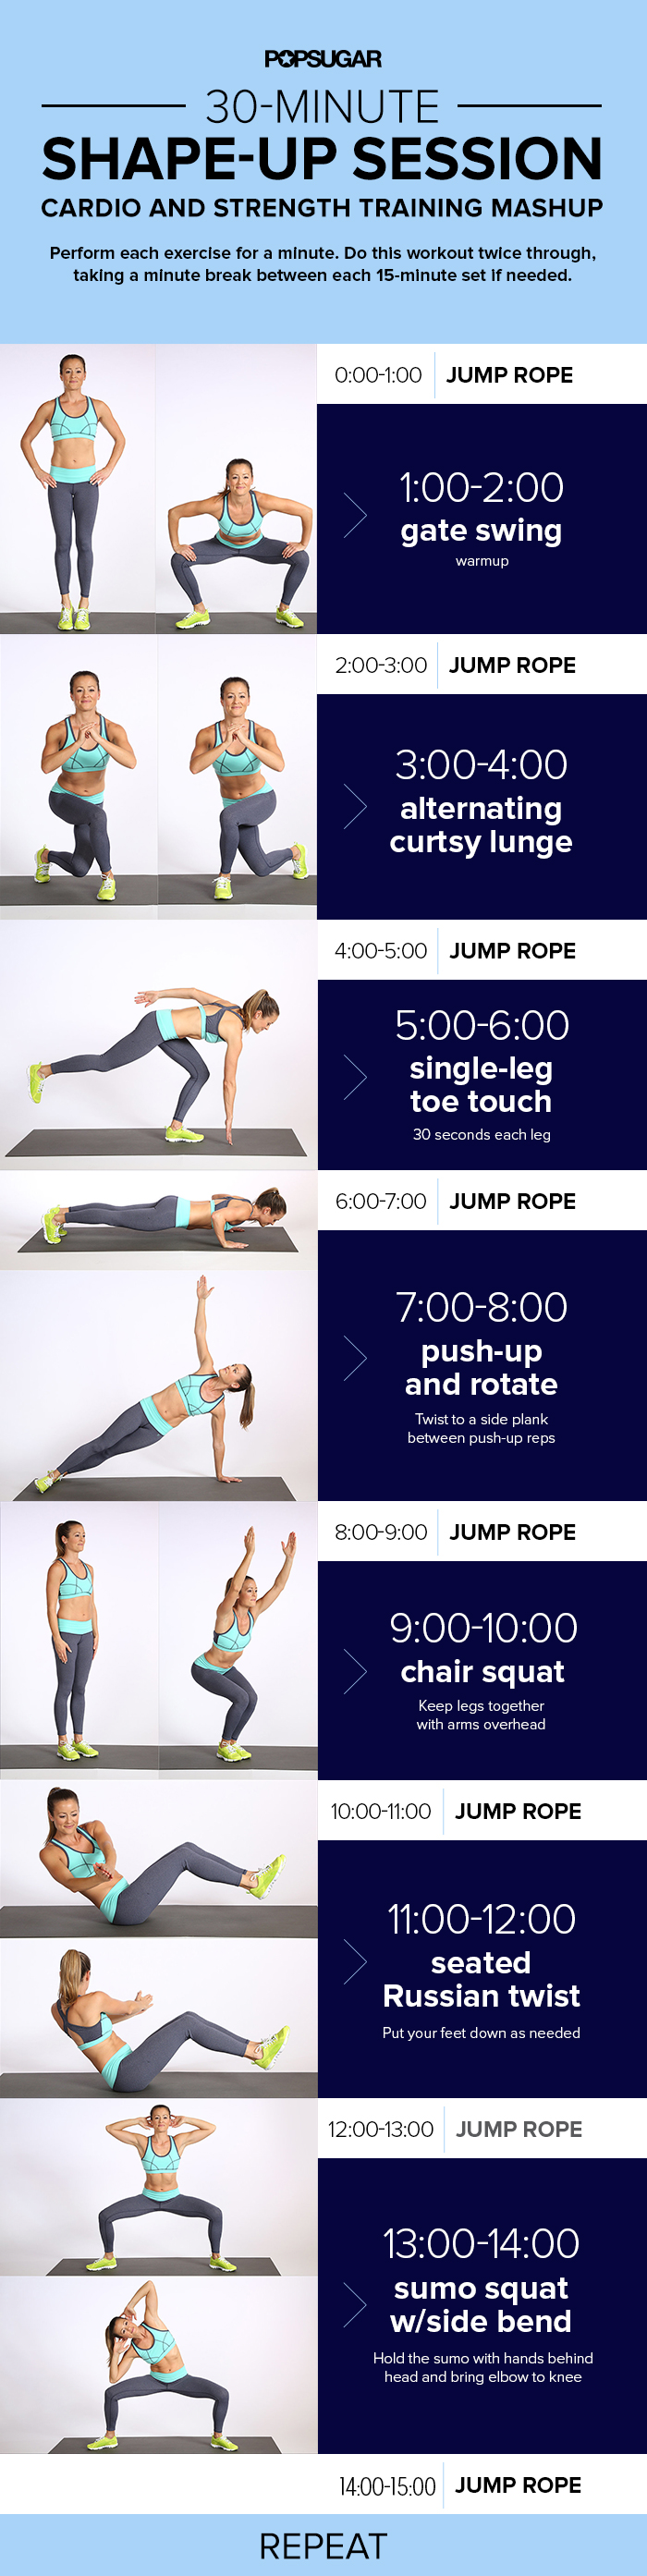 Jump-Rope Workout With Strength Training | POPSUGAR Fitness